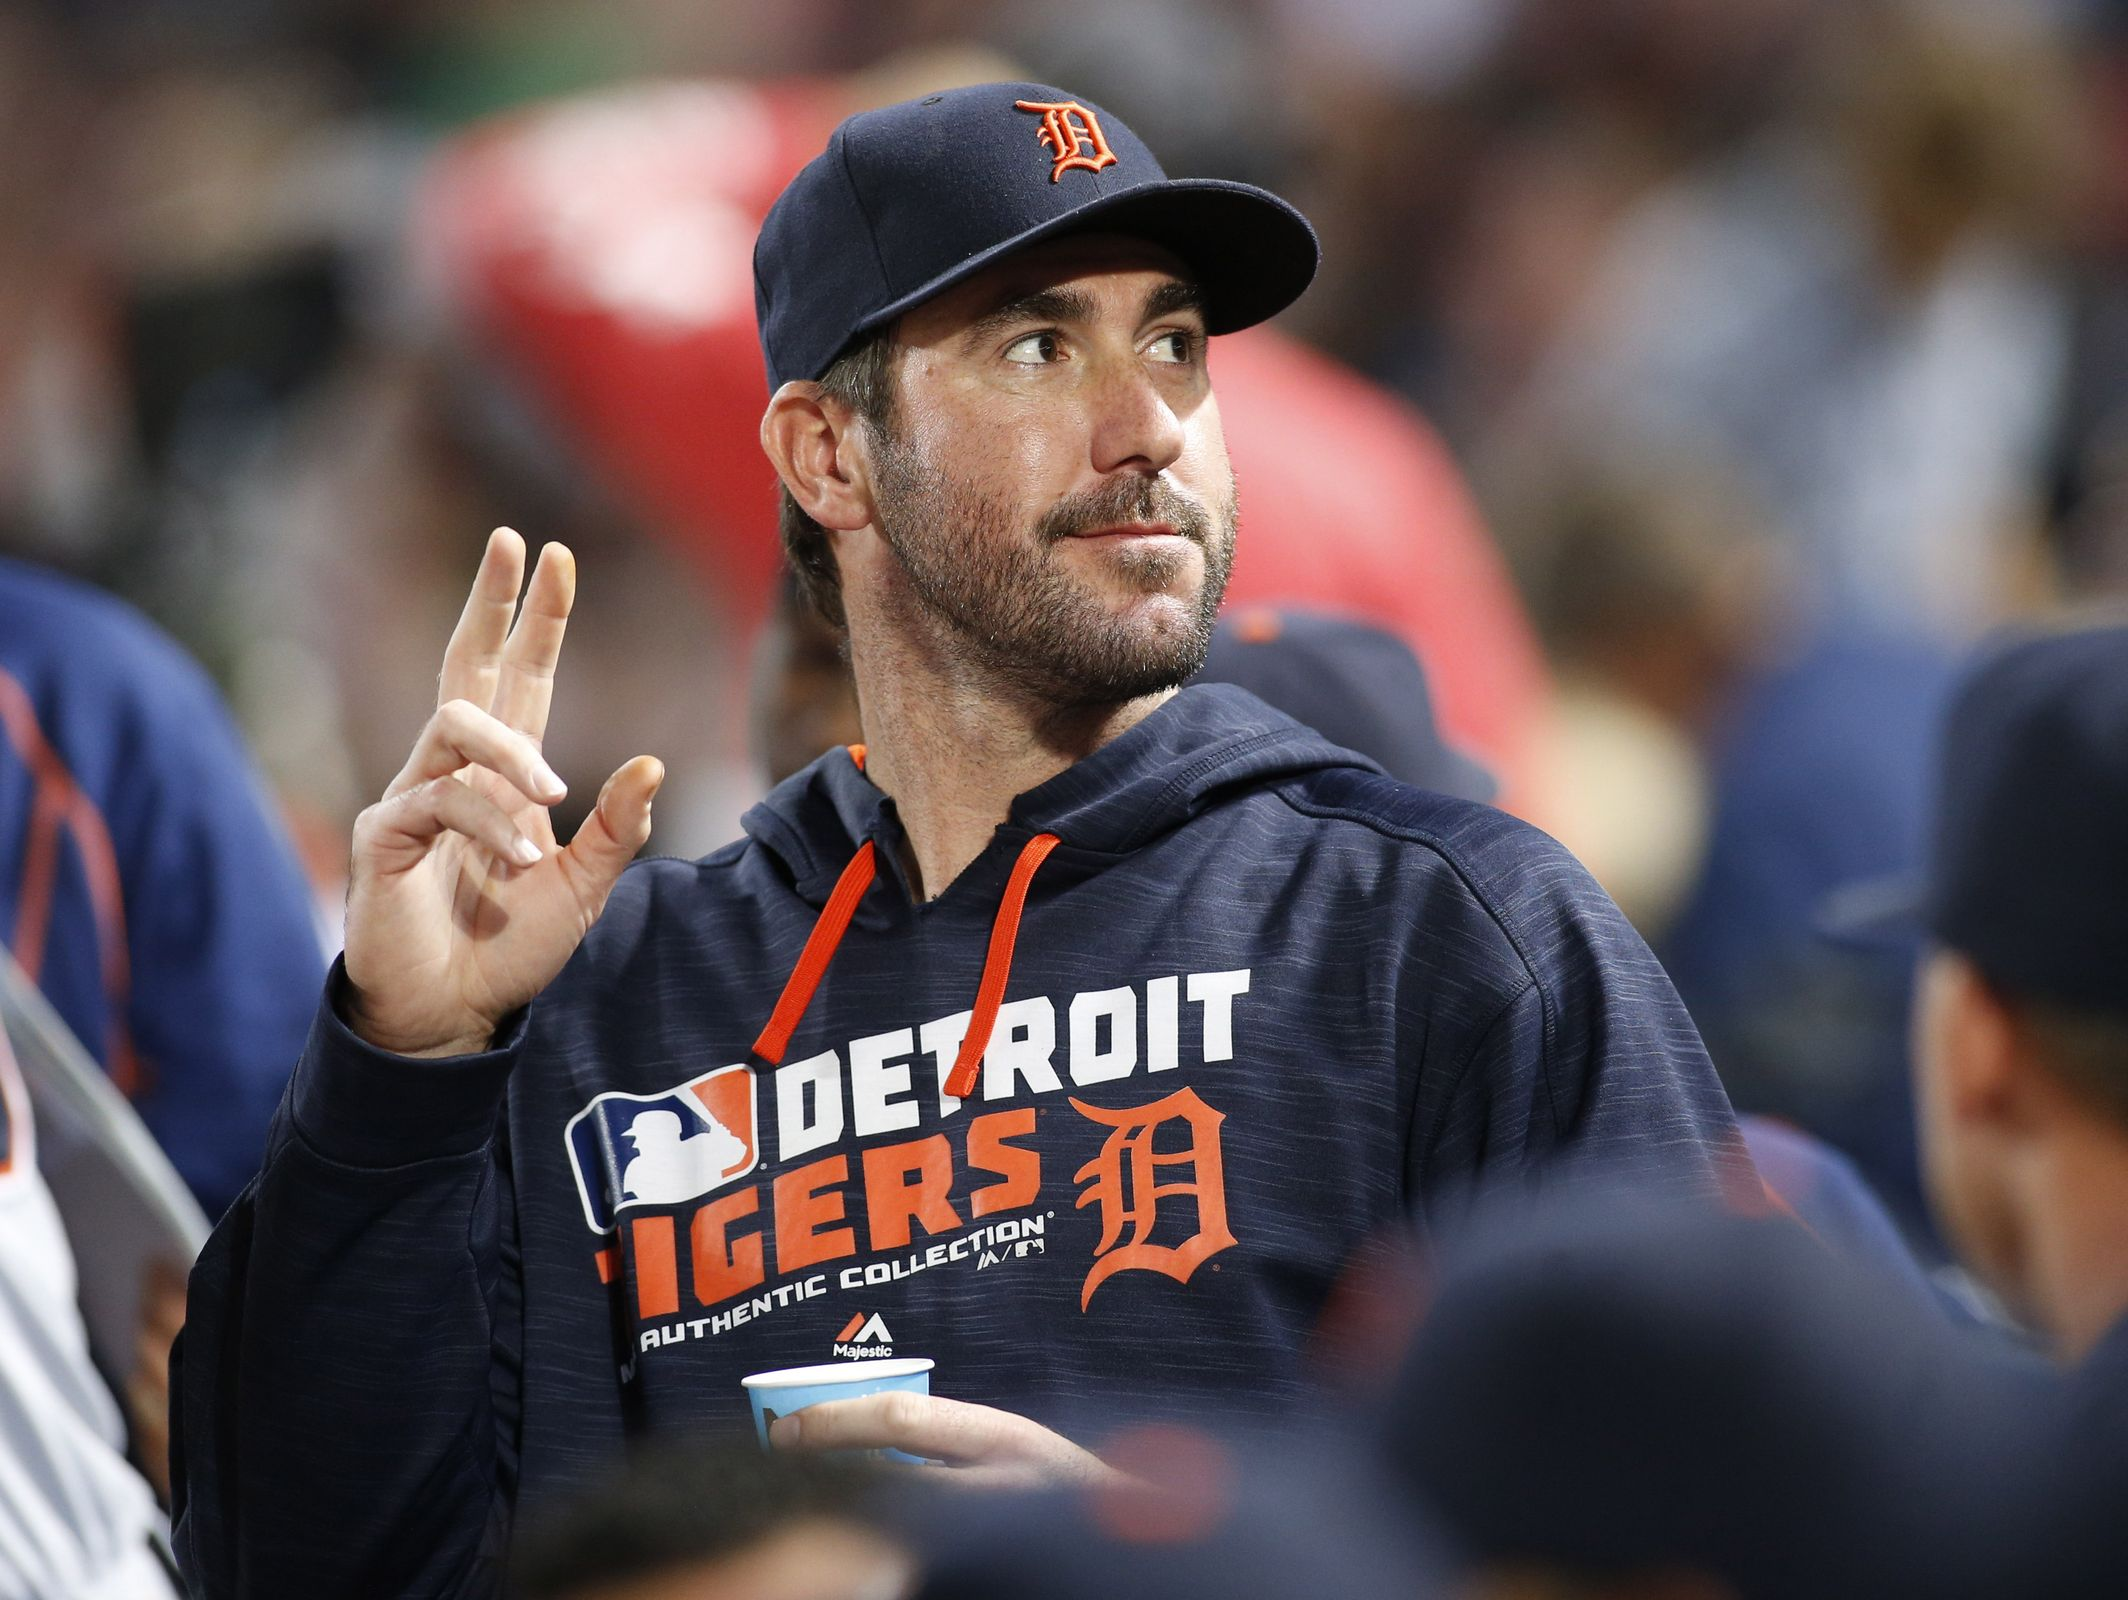 Detroit Tigers starting pitcher Justin Verlander acknowledges the crowd against the Atlanta Braves on Sept. 30, 2016, at Turner Field.